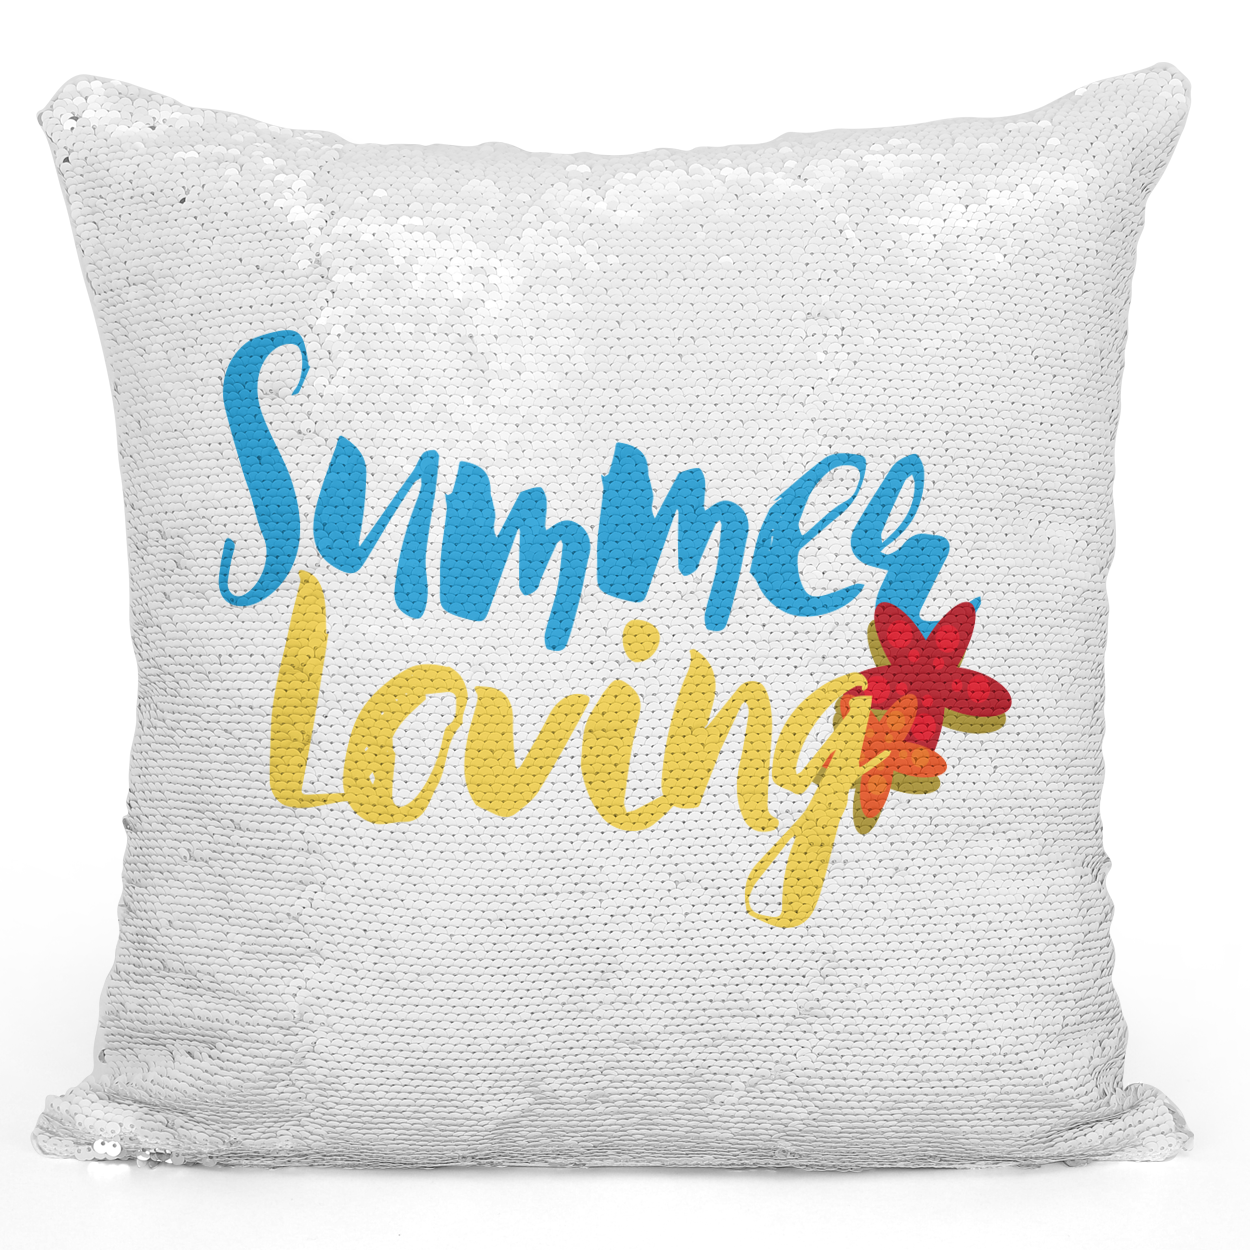 Sequin Pillow Magic Mermaid Throw Pillow Summer Loving Happy Summer Pillow - Pure White Printed 16 x 16 inch Square Home Decor Couch Pillow Loud Universe